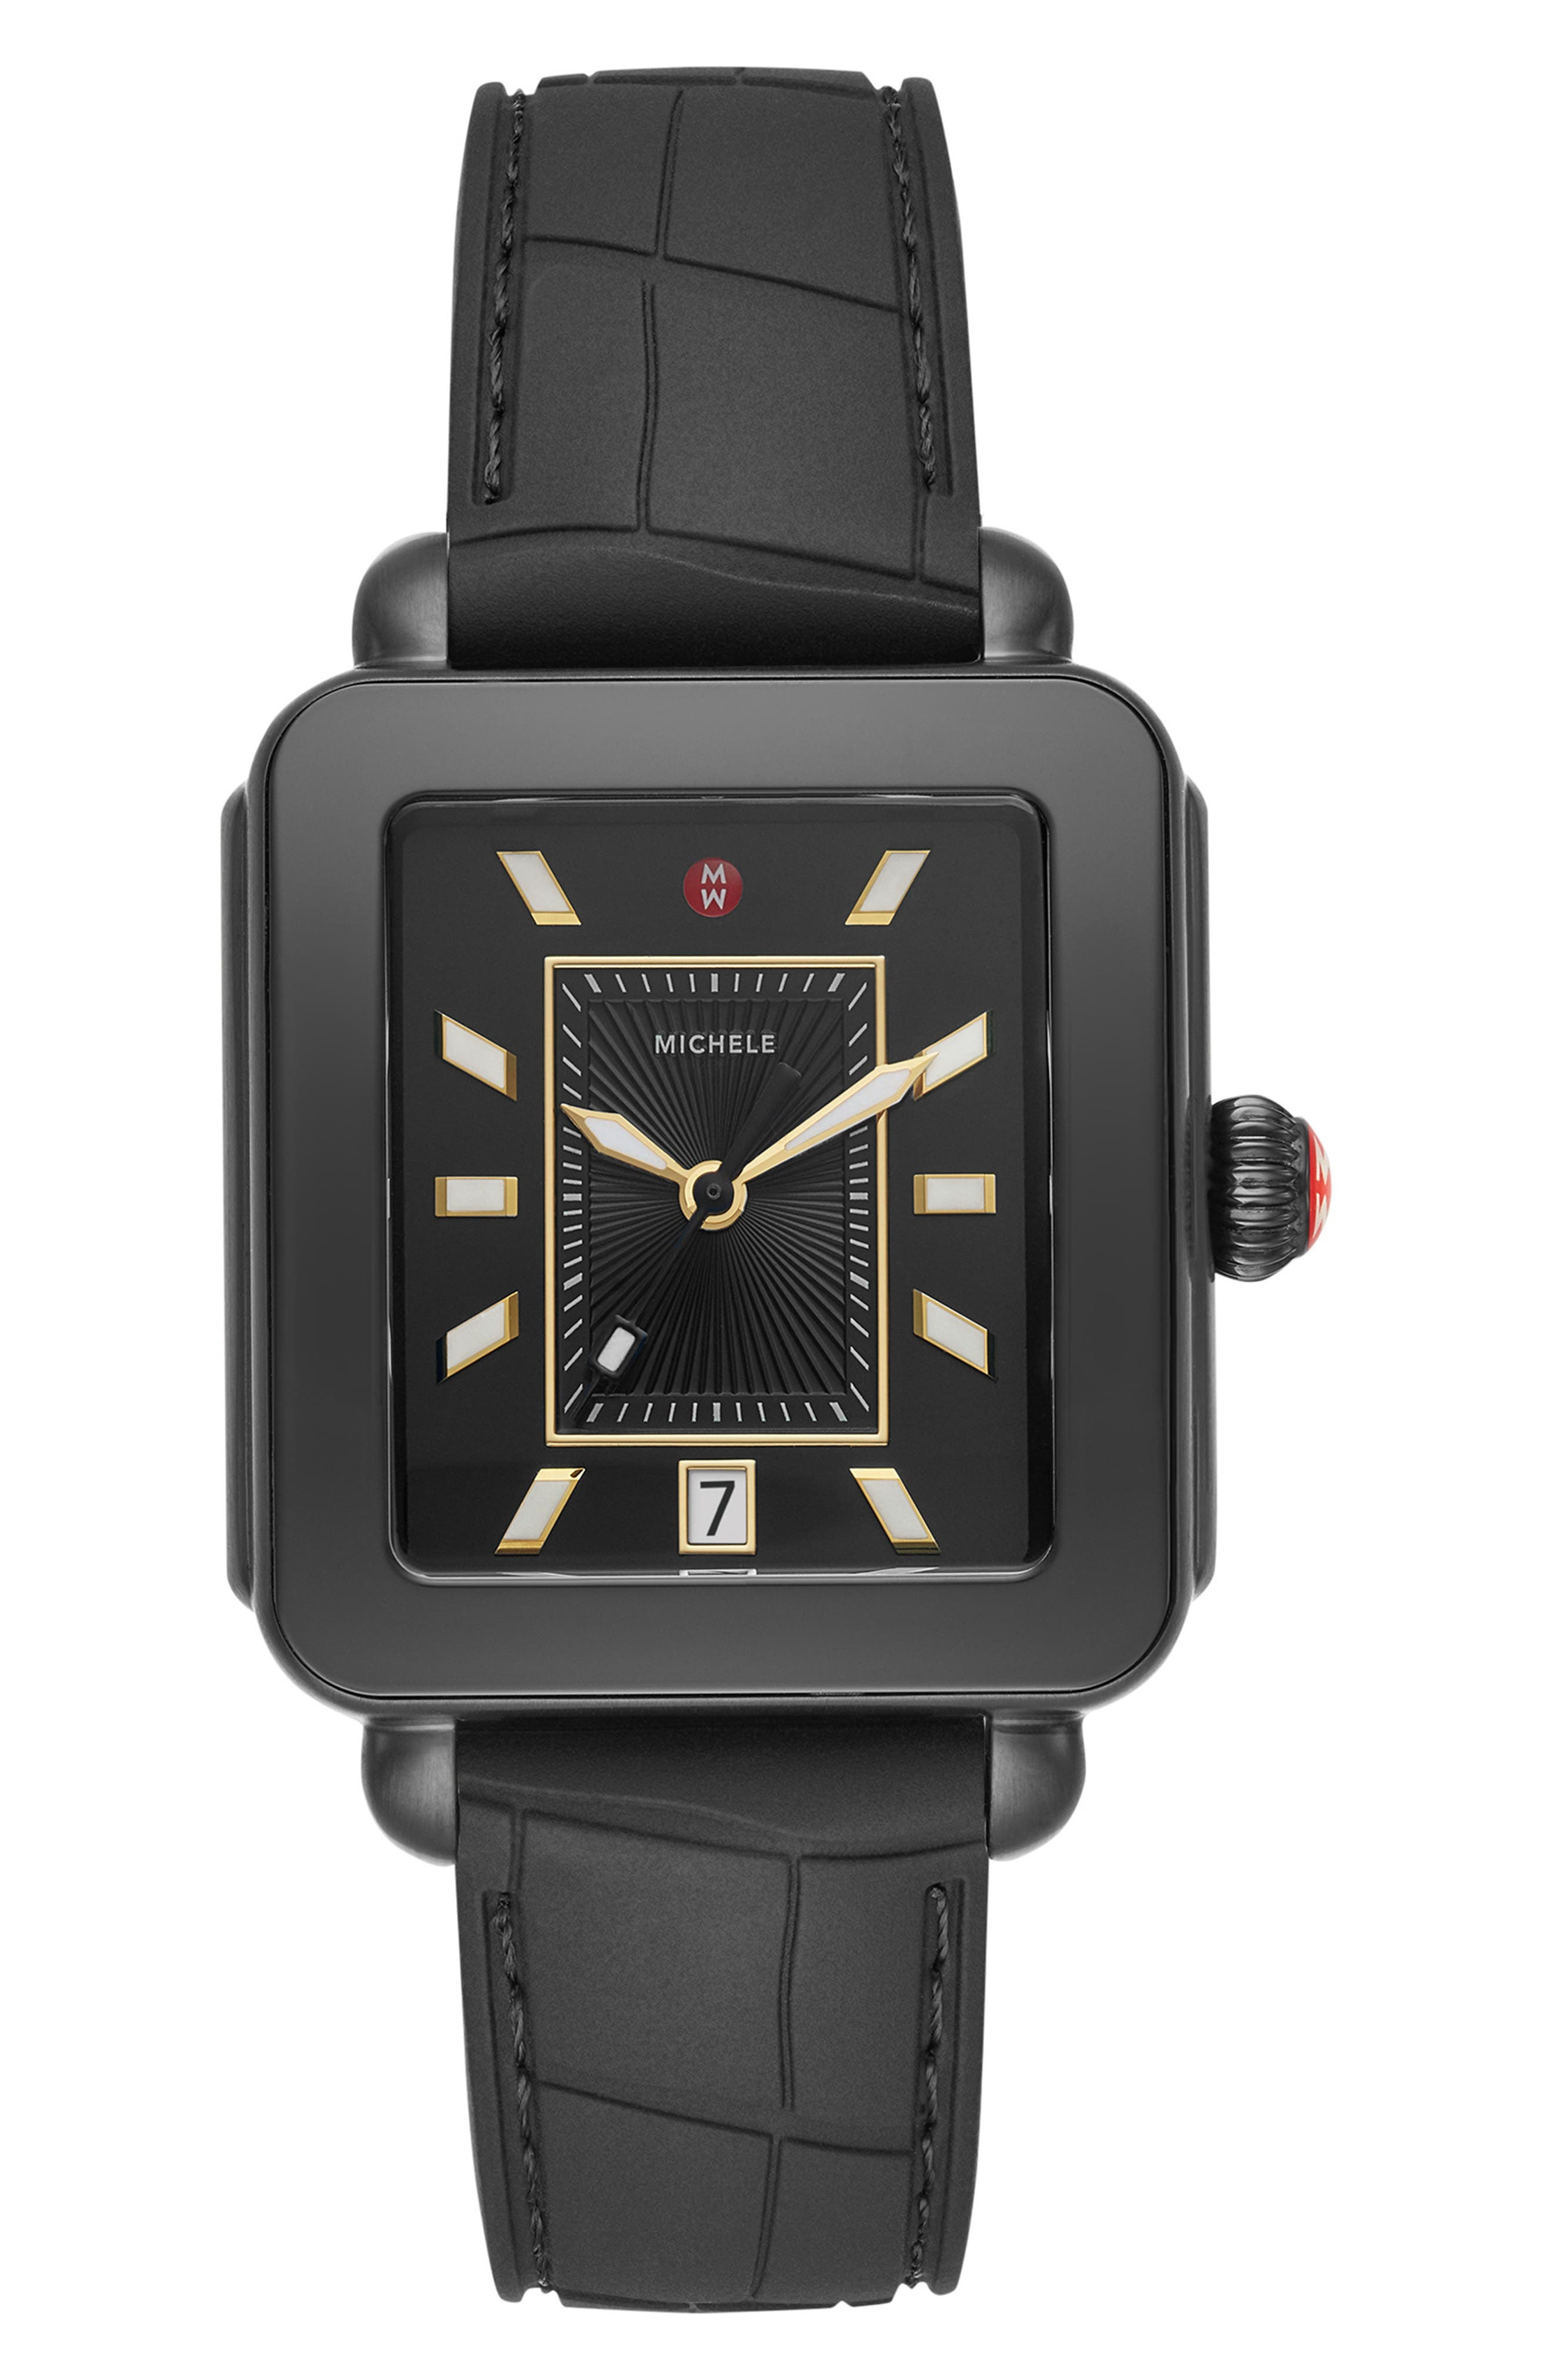 MICHELE, Deco Sport Watch Head & Silicone Strap Watch, 34mm x 36mm, Main thumbnail 1, color, BLACK/ GOLD/ BLACK